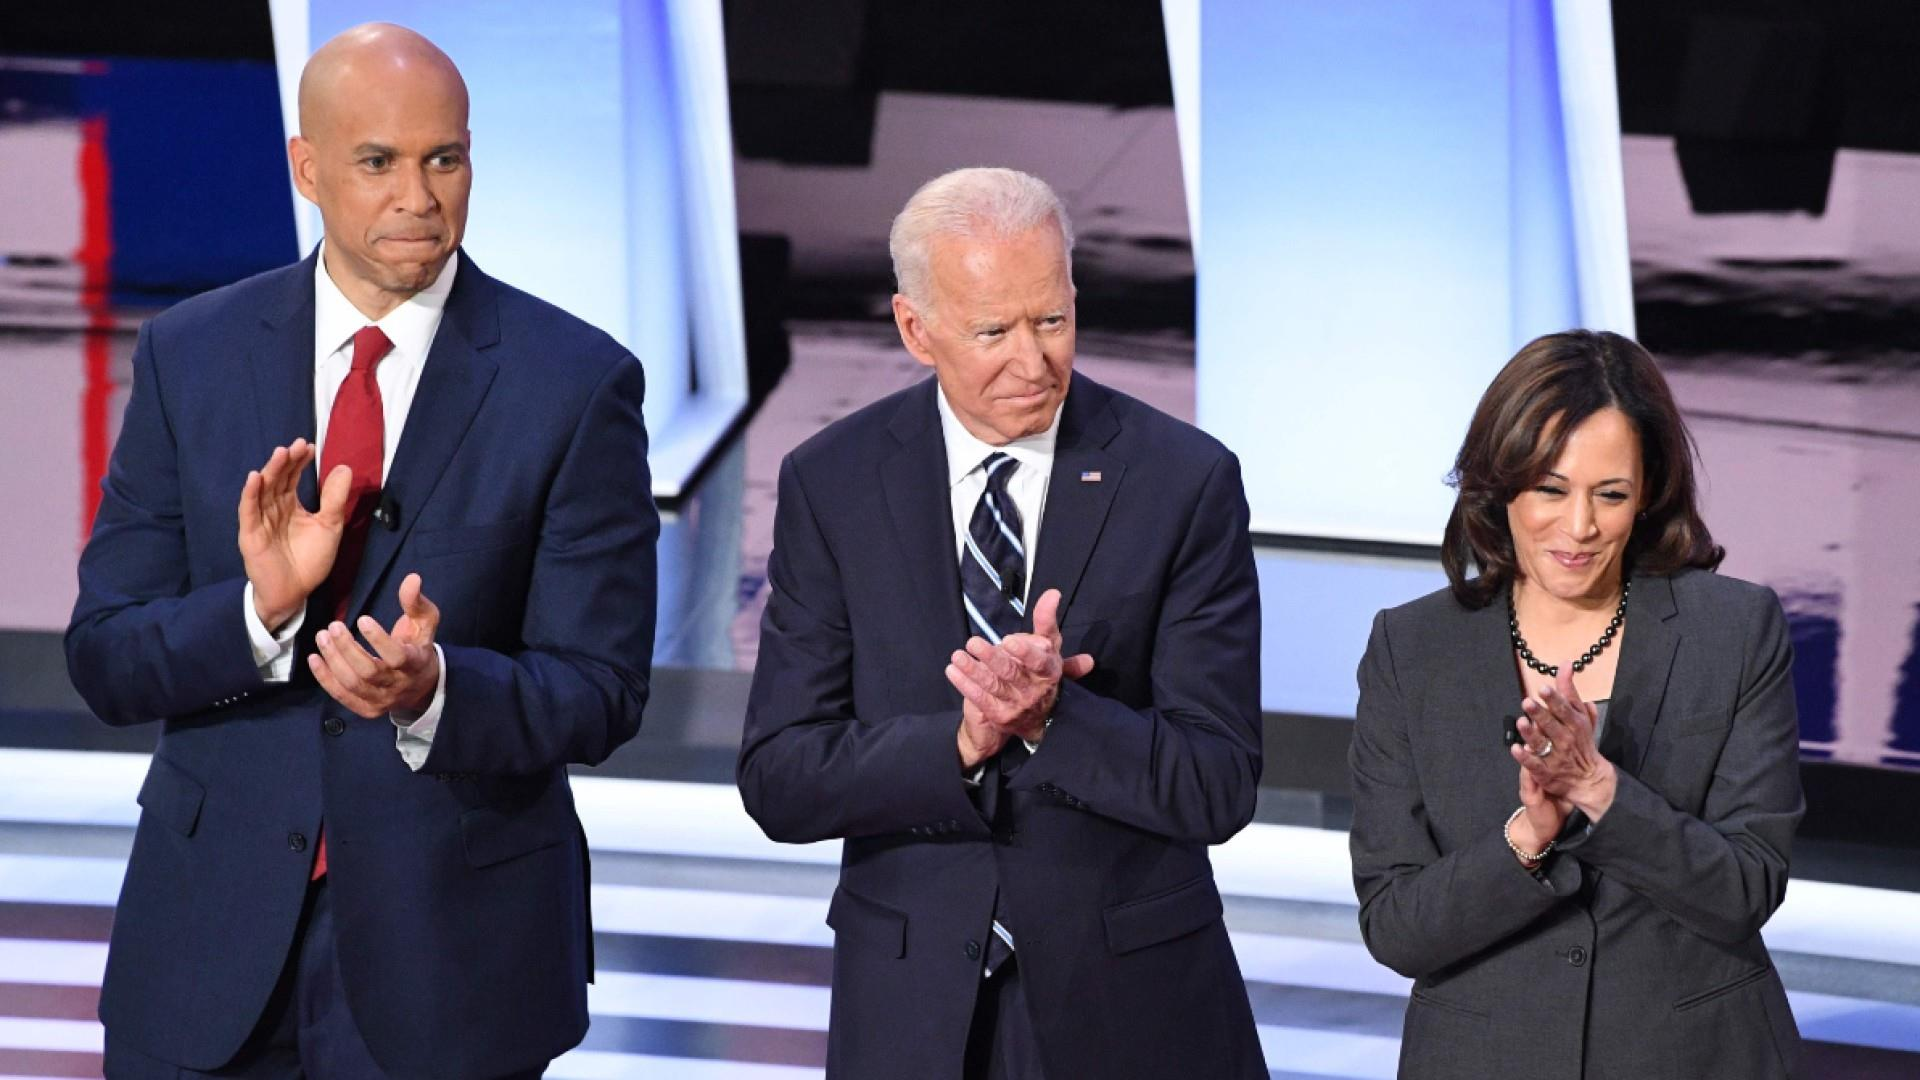 Democrats hit Biden repeatedly in contentious second night of debate